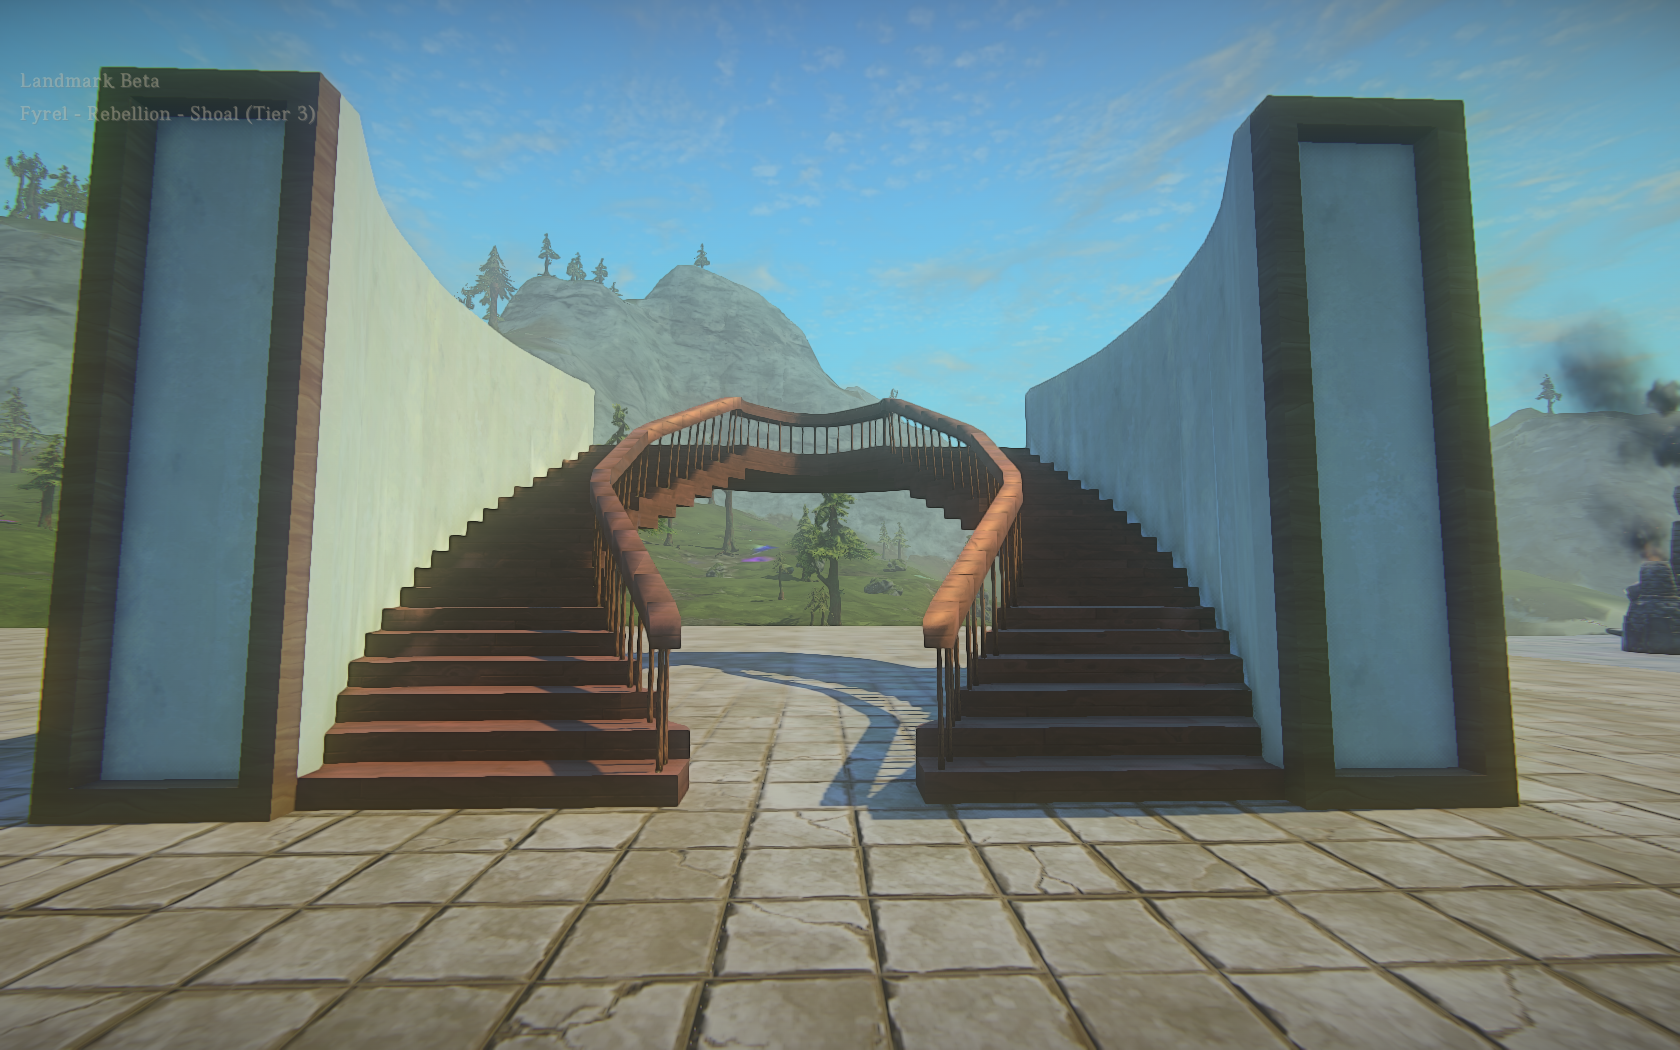 Minecraft Castle Staircase : Minecraft curved staircase images reverse search